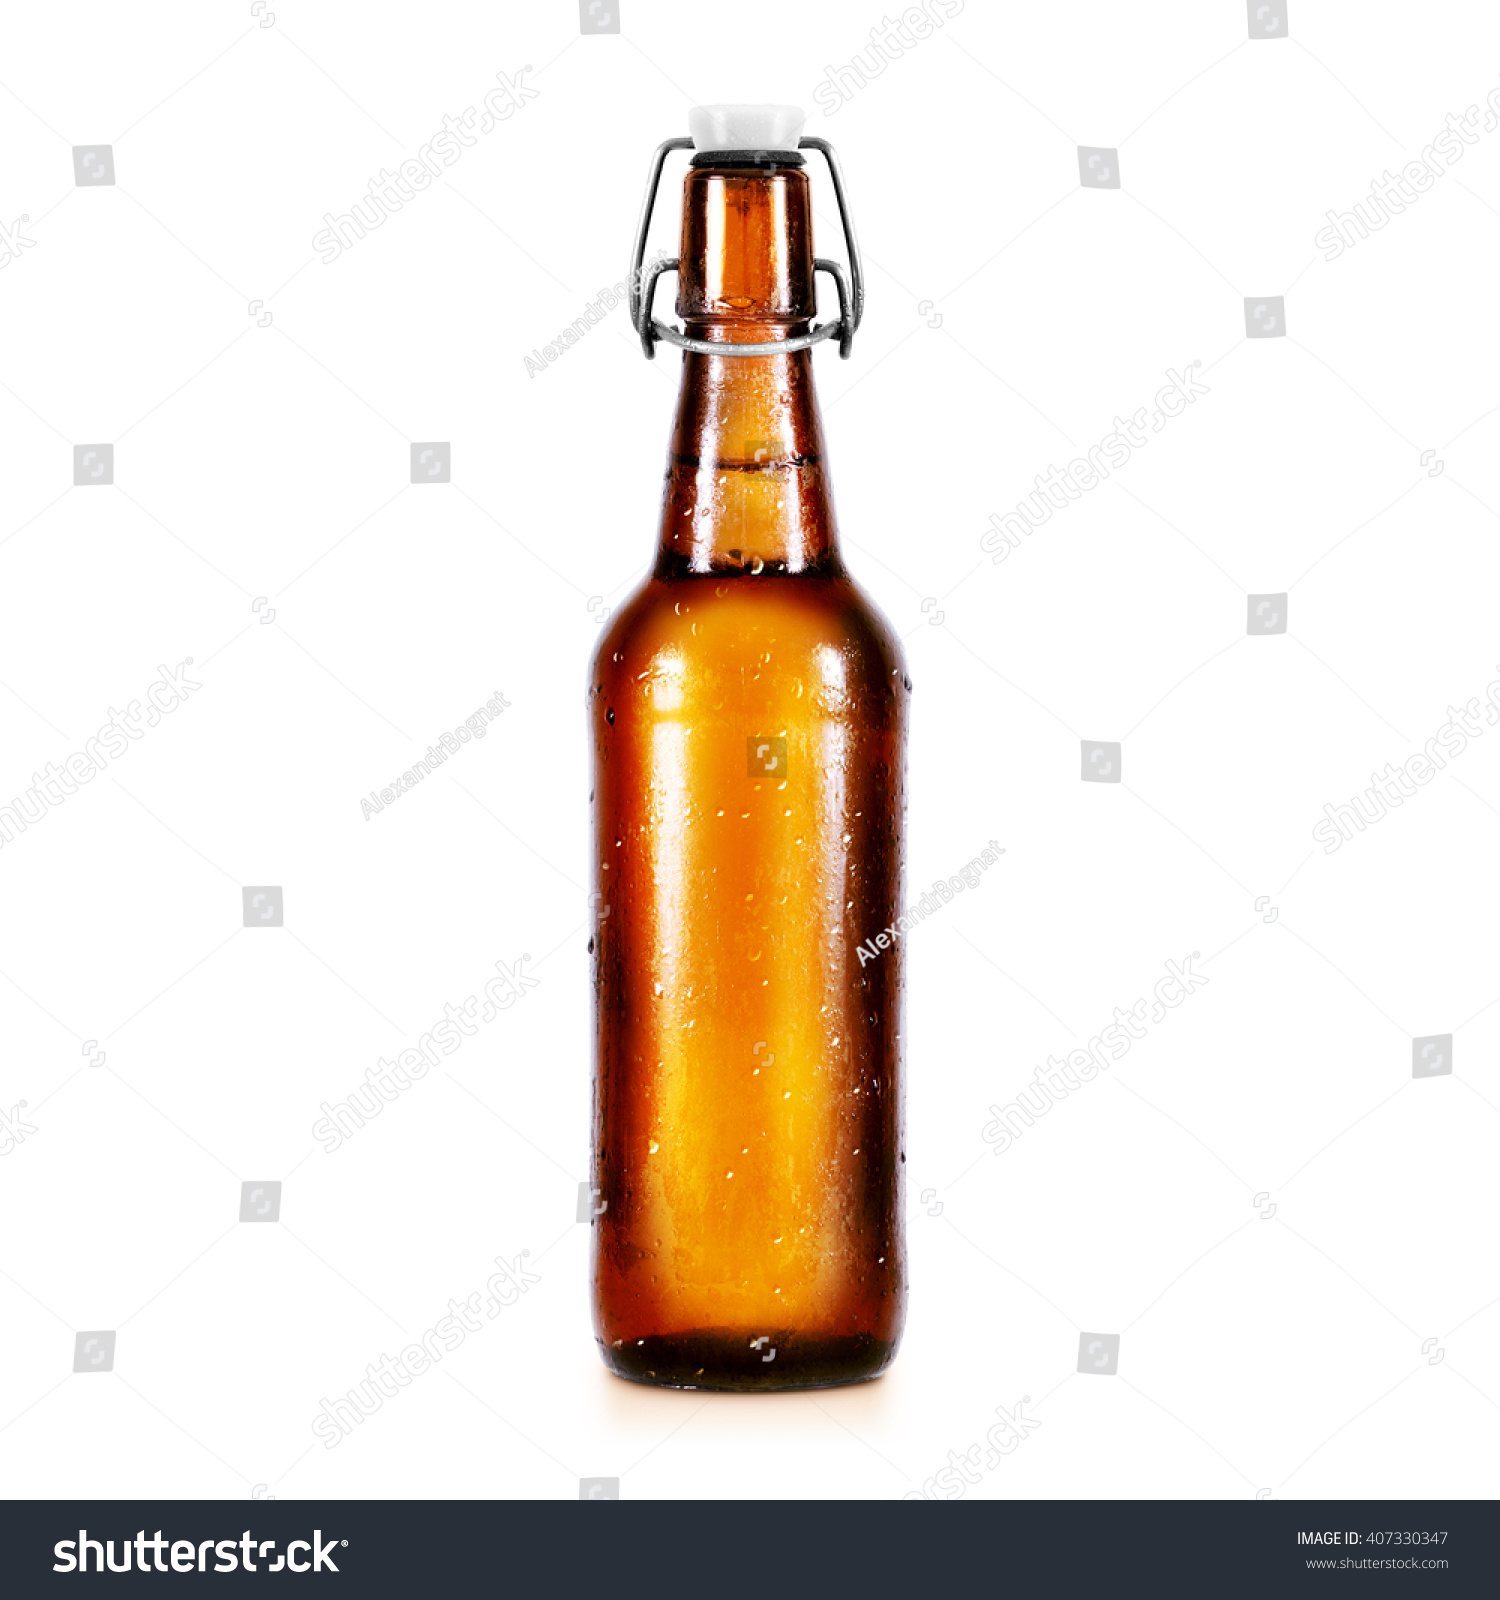 Blank Beer Bottle Mockup Without Label Foto de stock (editar ahora ...